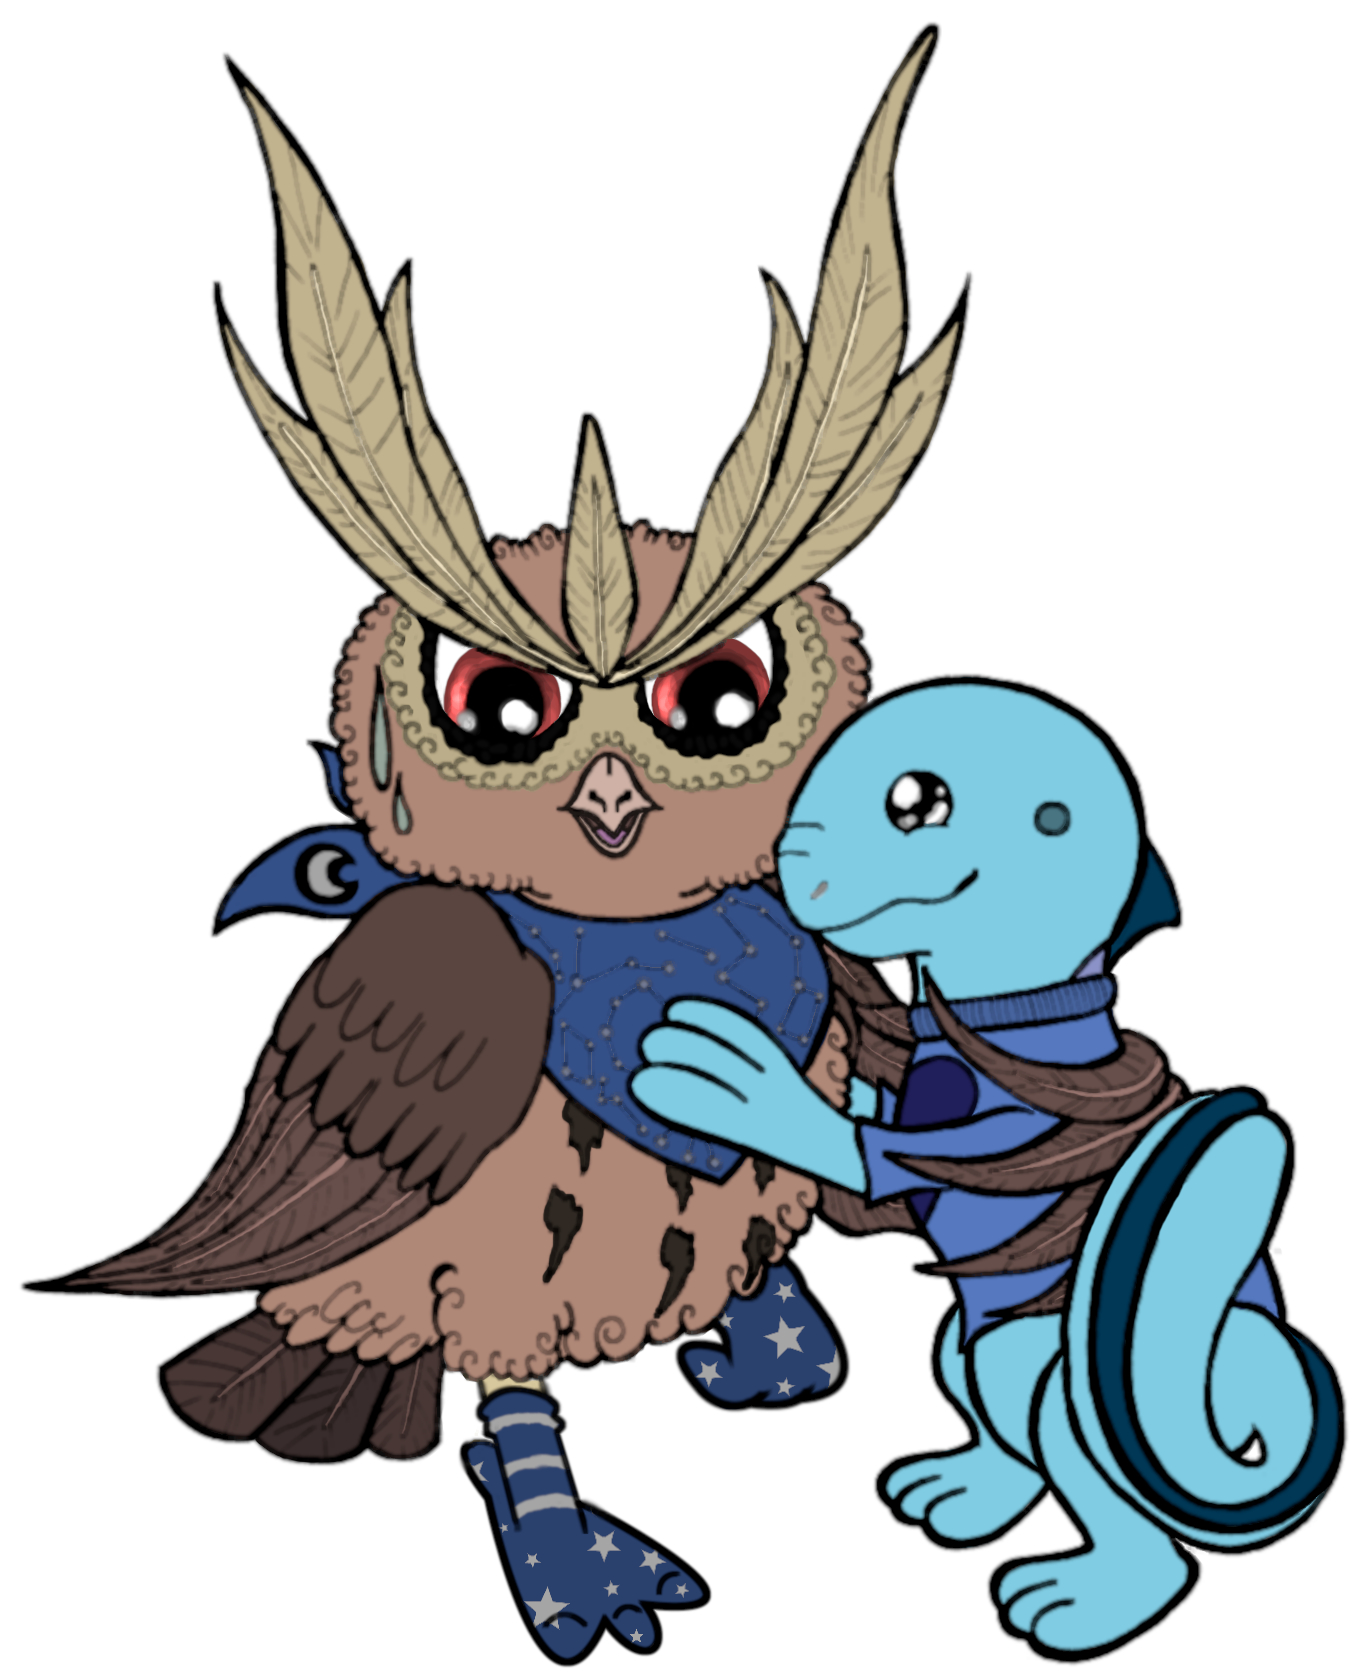 Pokémon-Zeichnung: Fluffy bird, you're my daddy now!